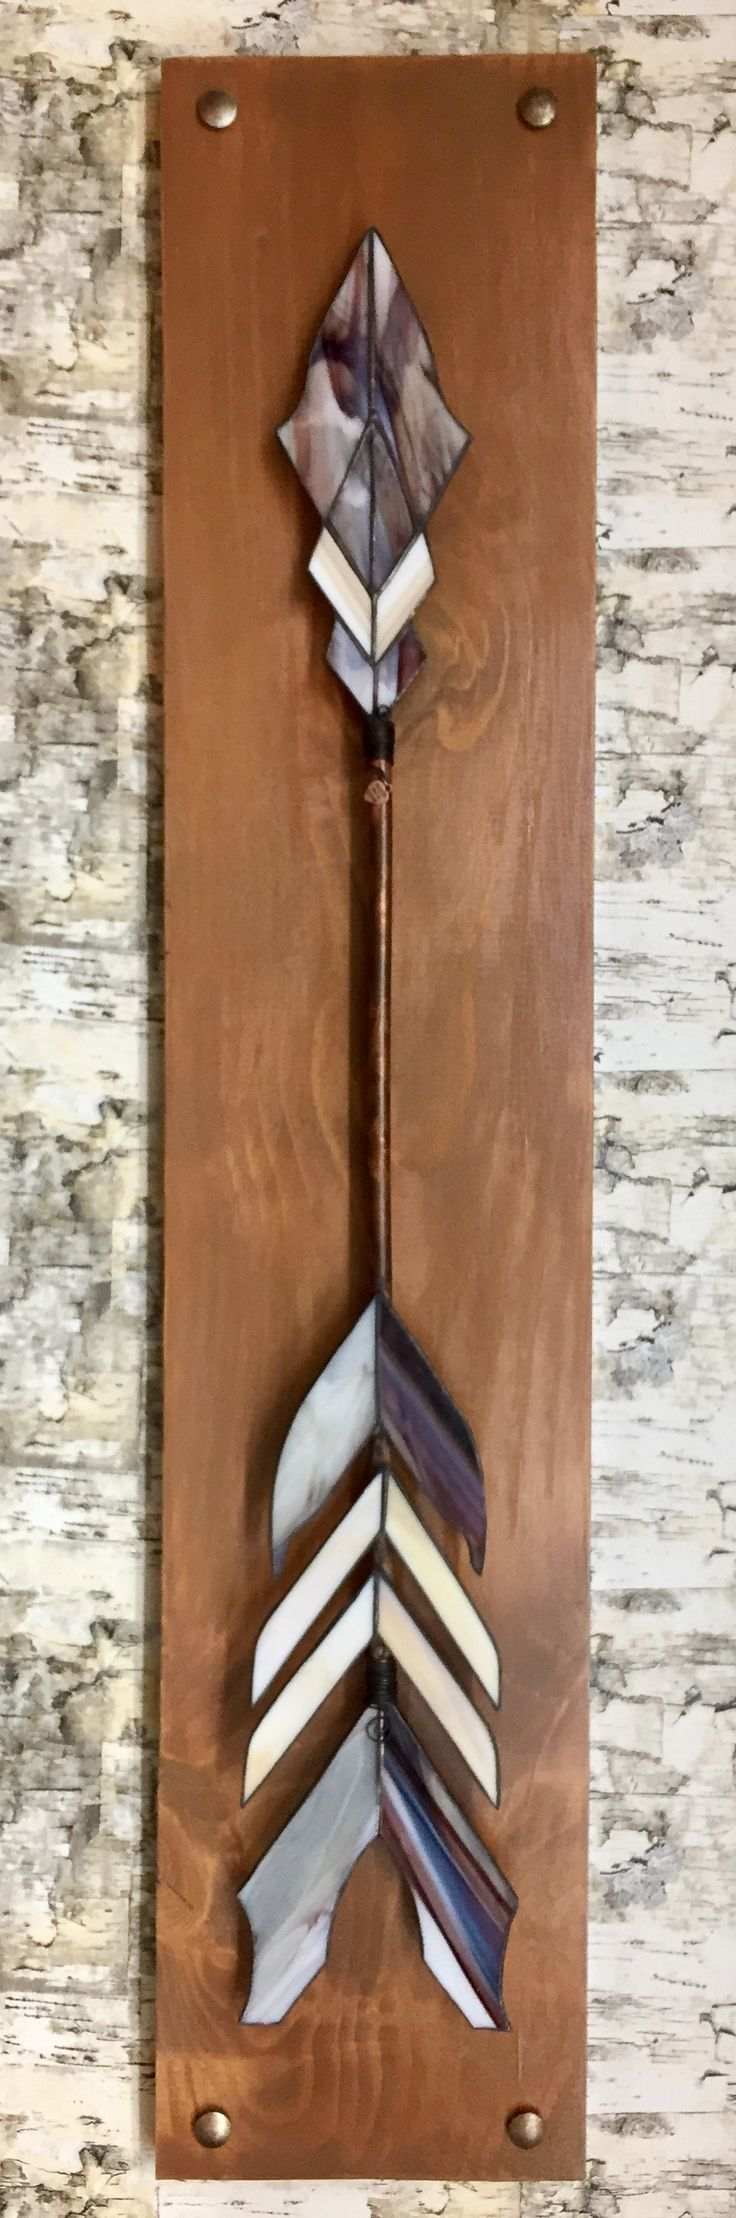 Stained glass arrow, copper foil, reclaimed wood, arrow wall art (sheila.szilagyi@gmail.com)